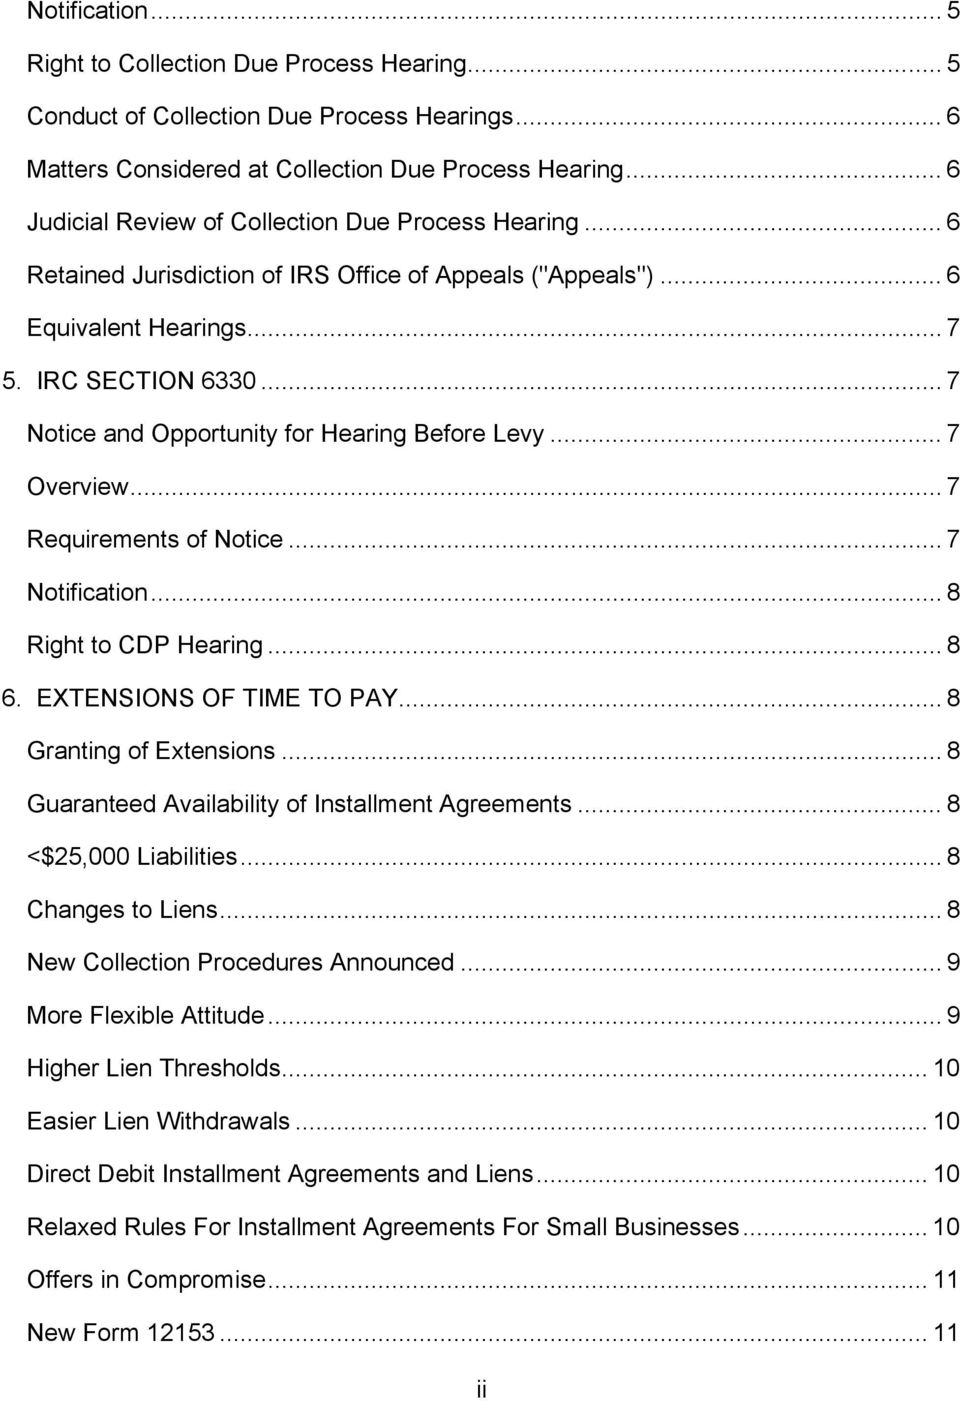 .. 7 Notice and Opportunity for Hearing Before Levy... 7 Overview... 7 Requirements of Notice... 7 Notification... 8 Right to CDP Hearing... 8 6. EXTENSIONS OF TIME TO PAY... 8 Granting of Extensions.